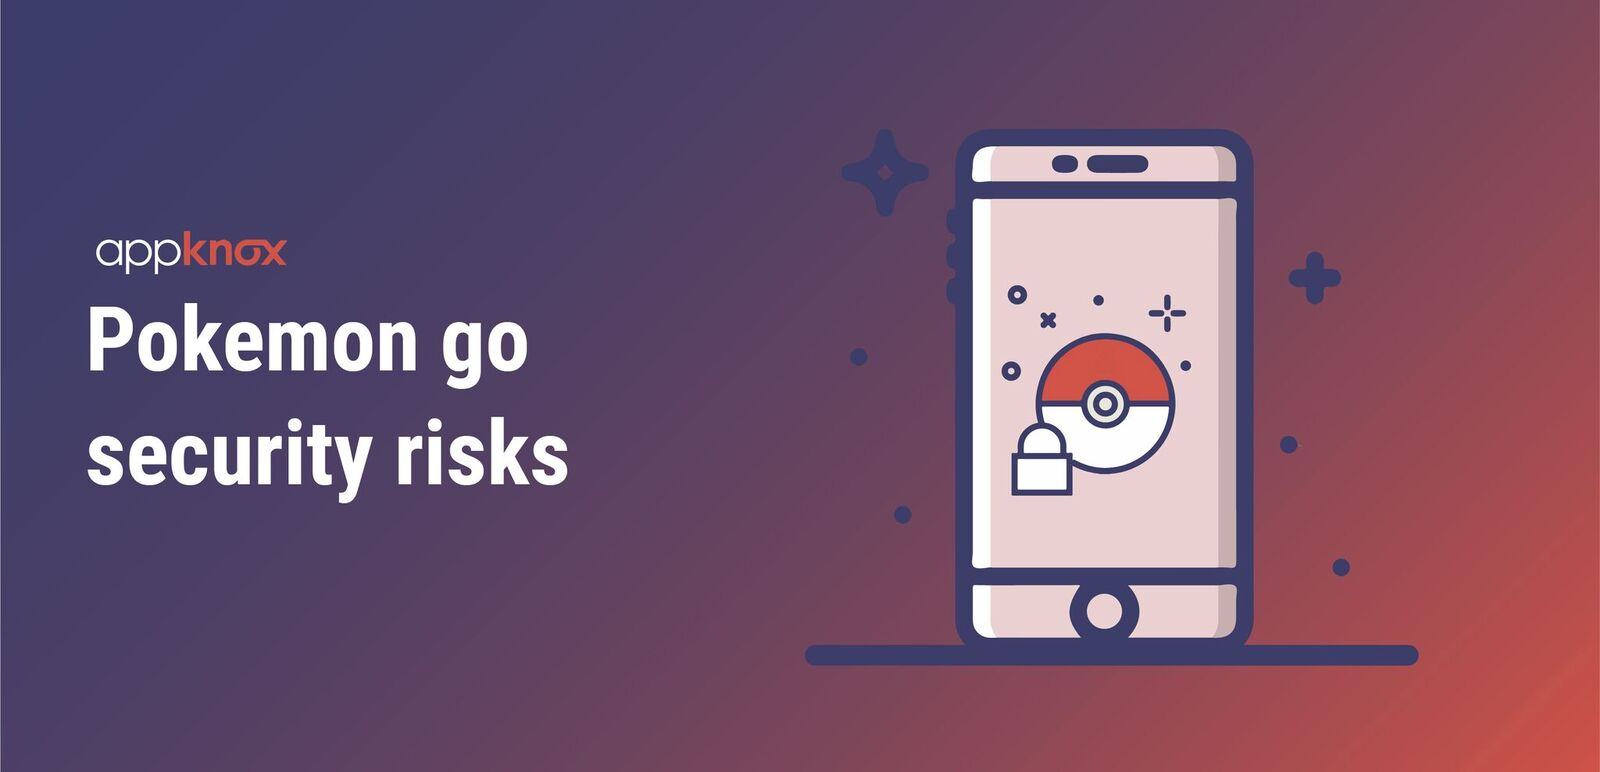 Pokemon Go Security risks